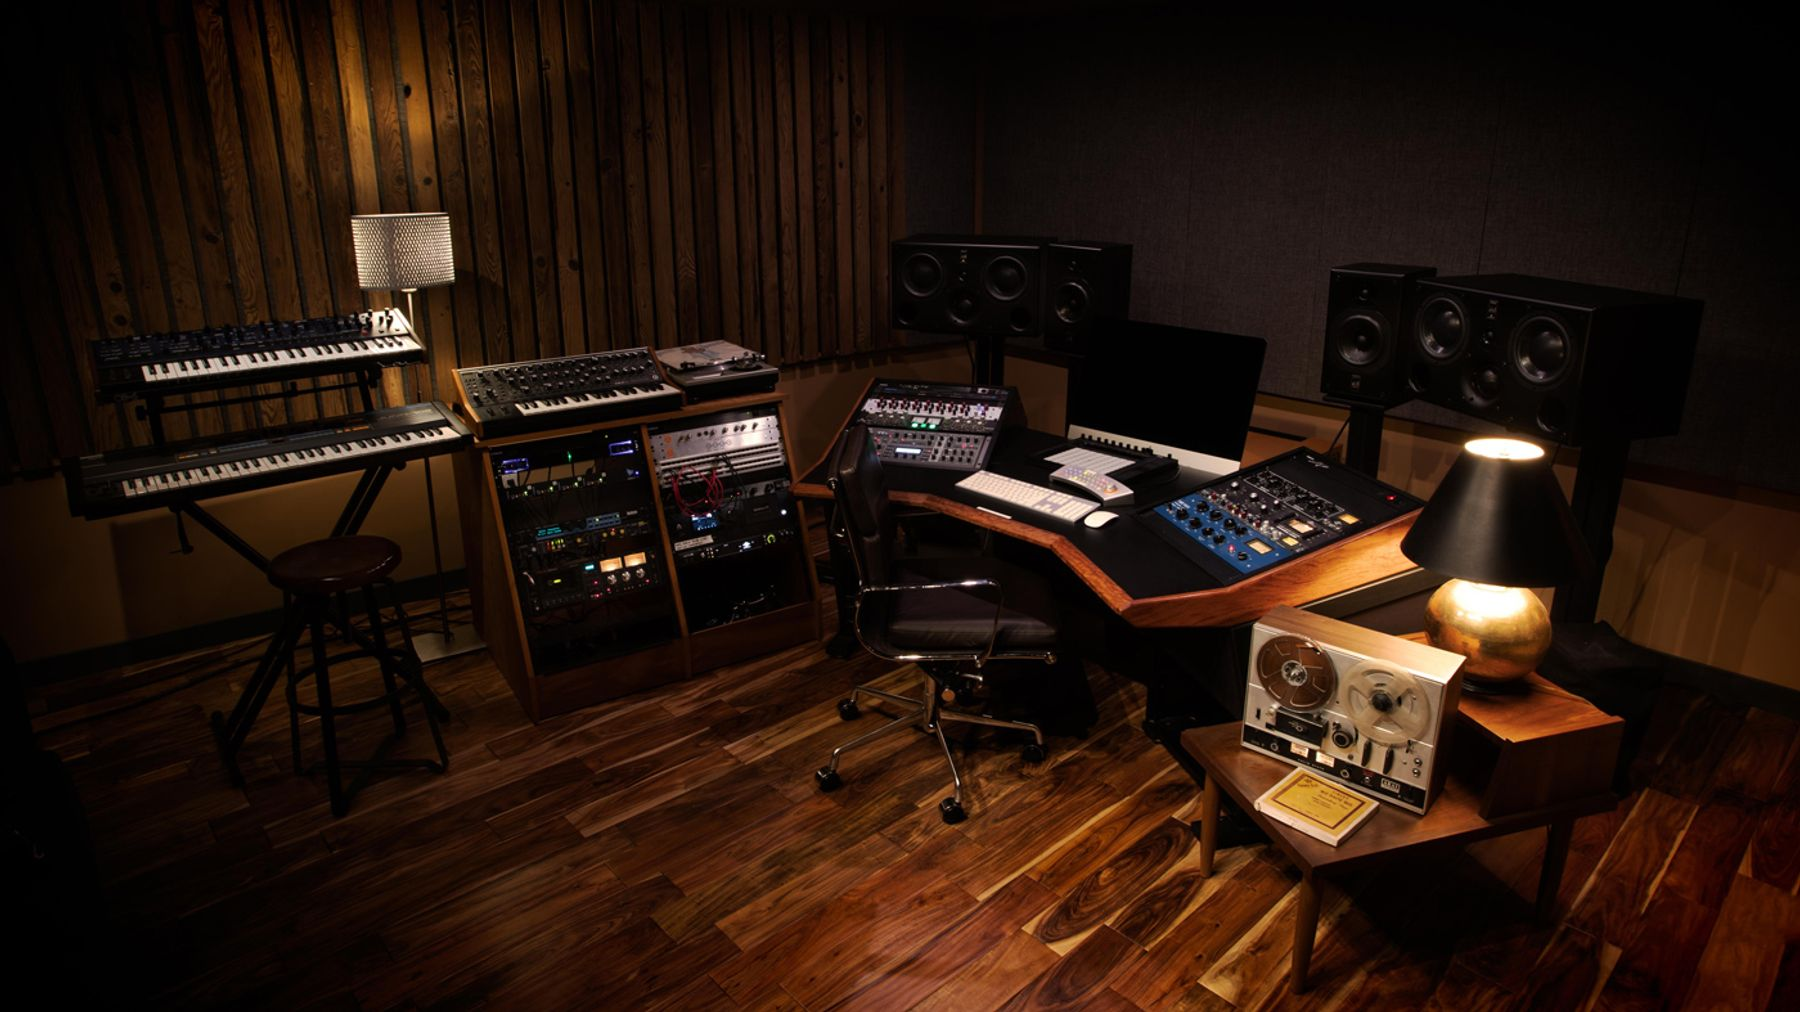 Another view of recording studio A